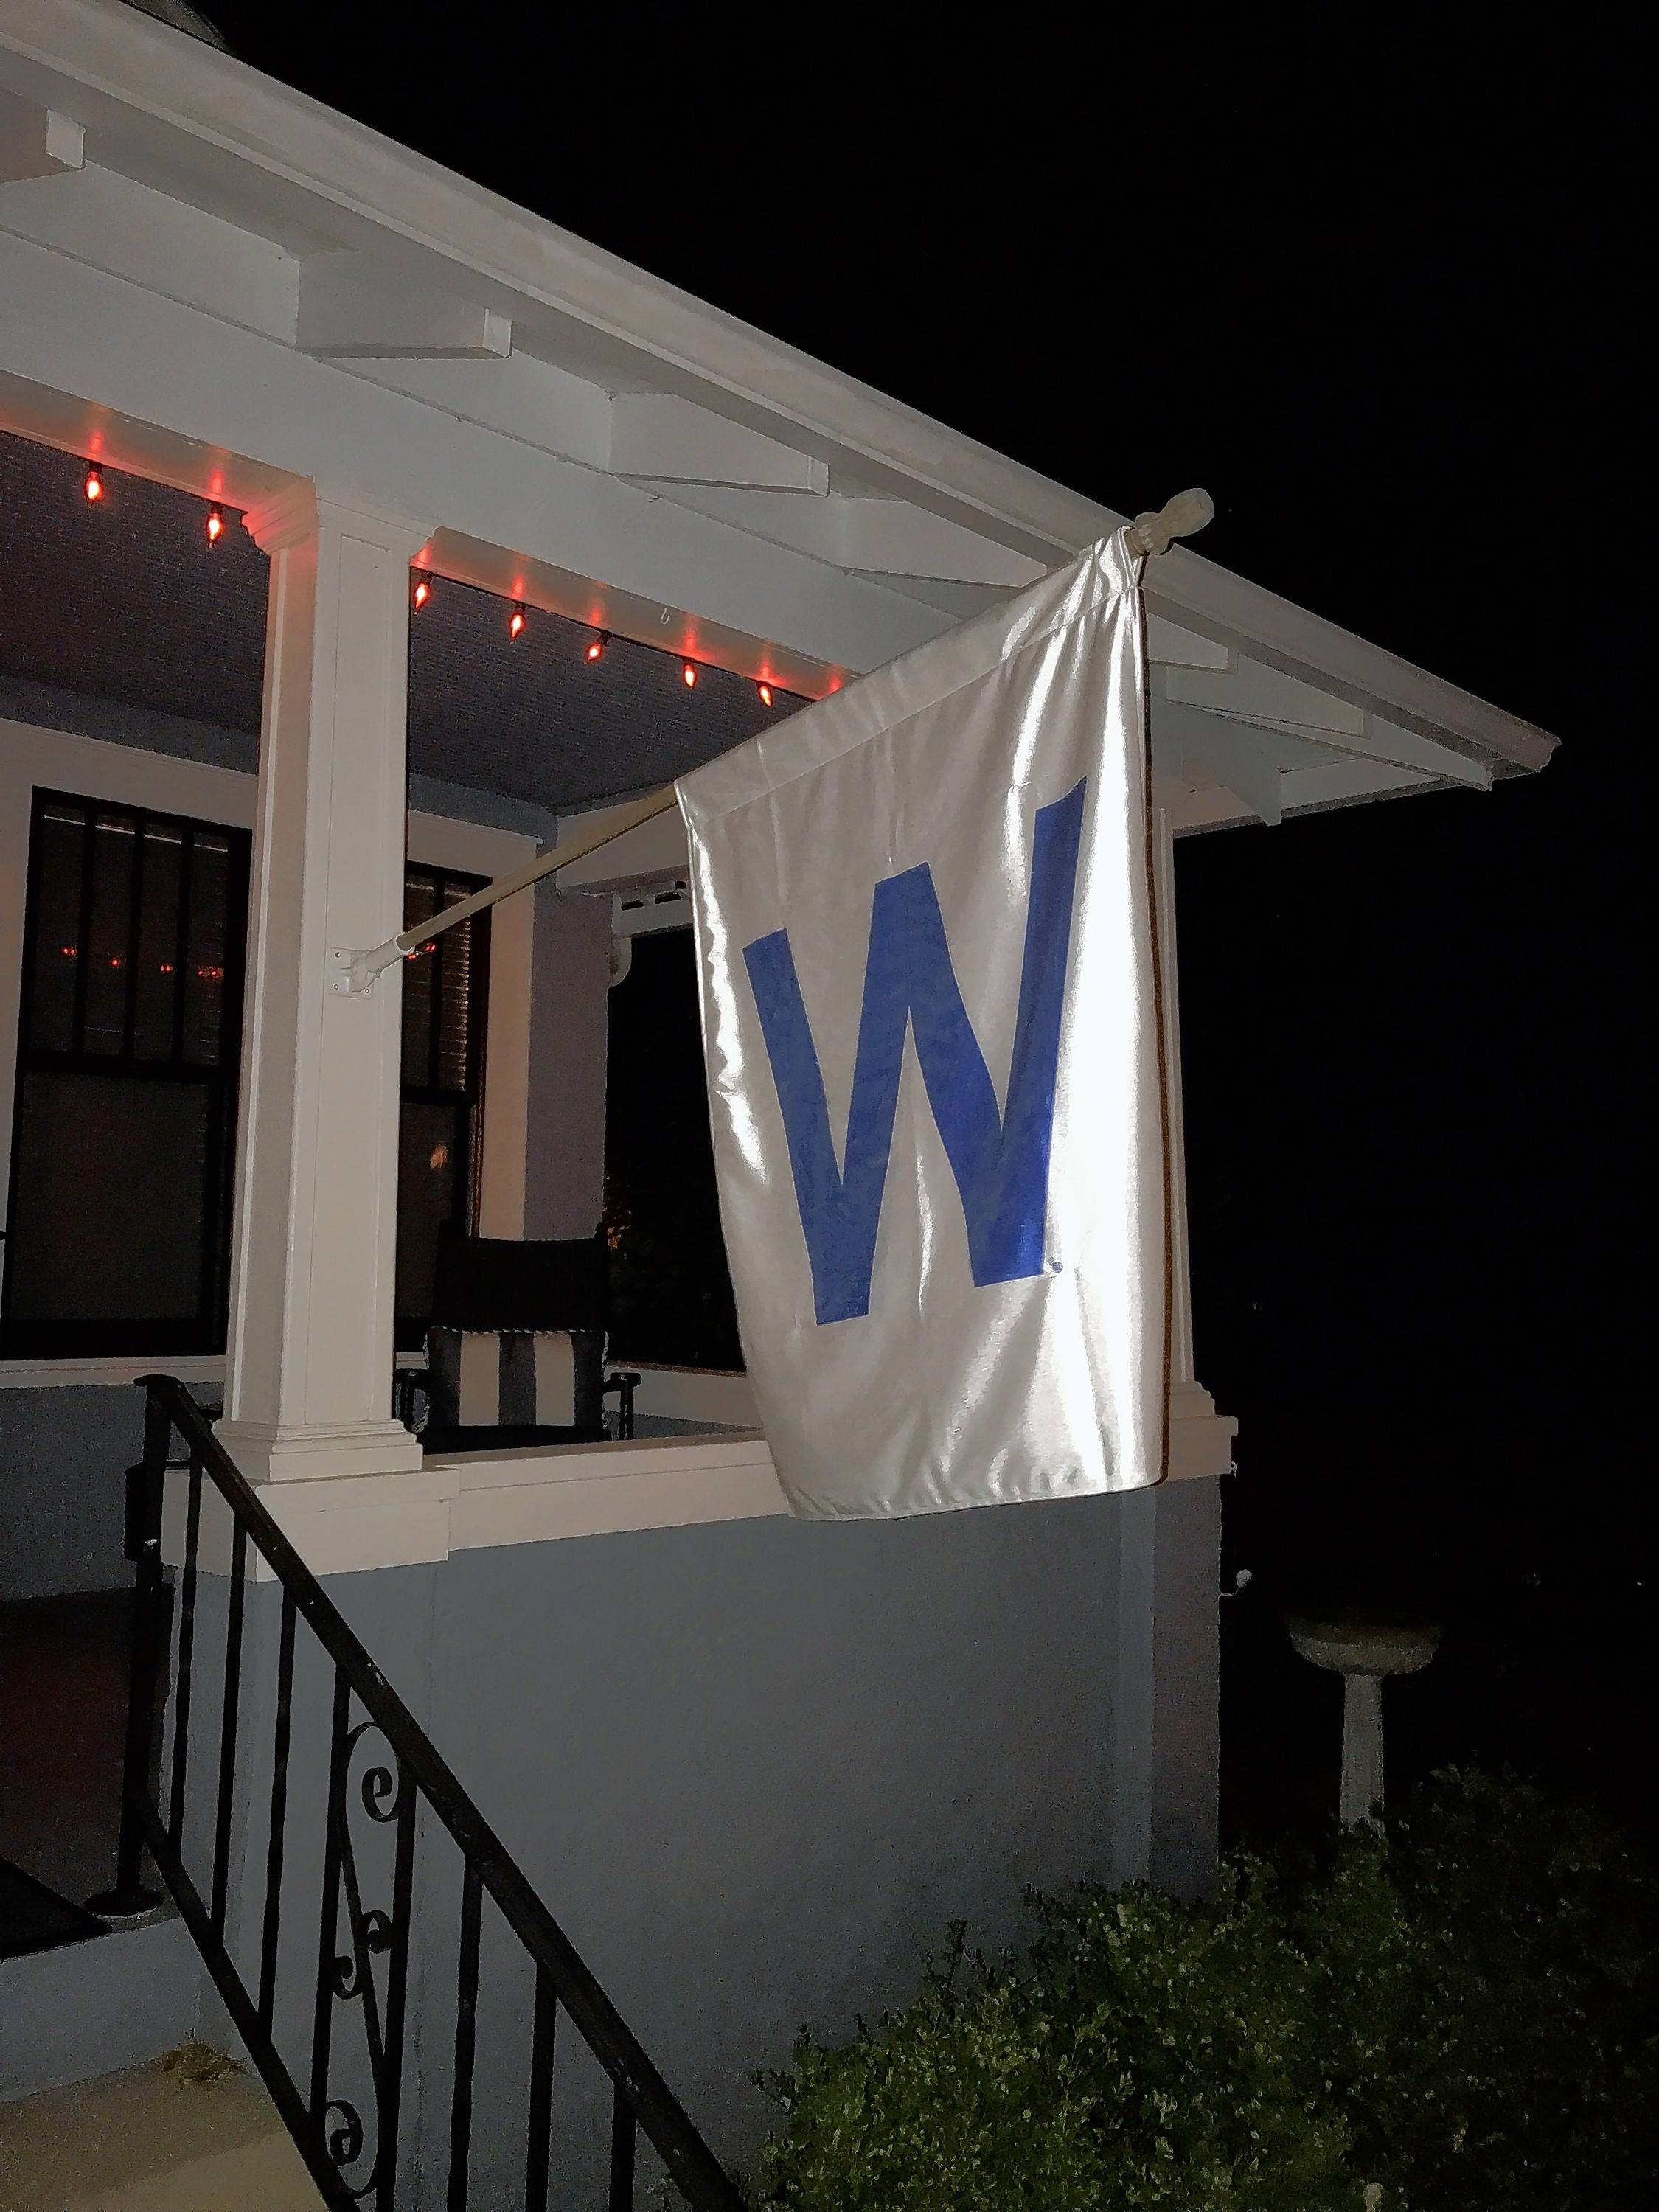 Alas, Feez's W Flag must come down for the winter.